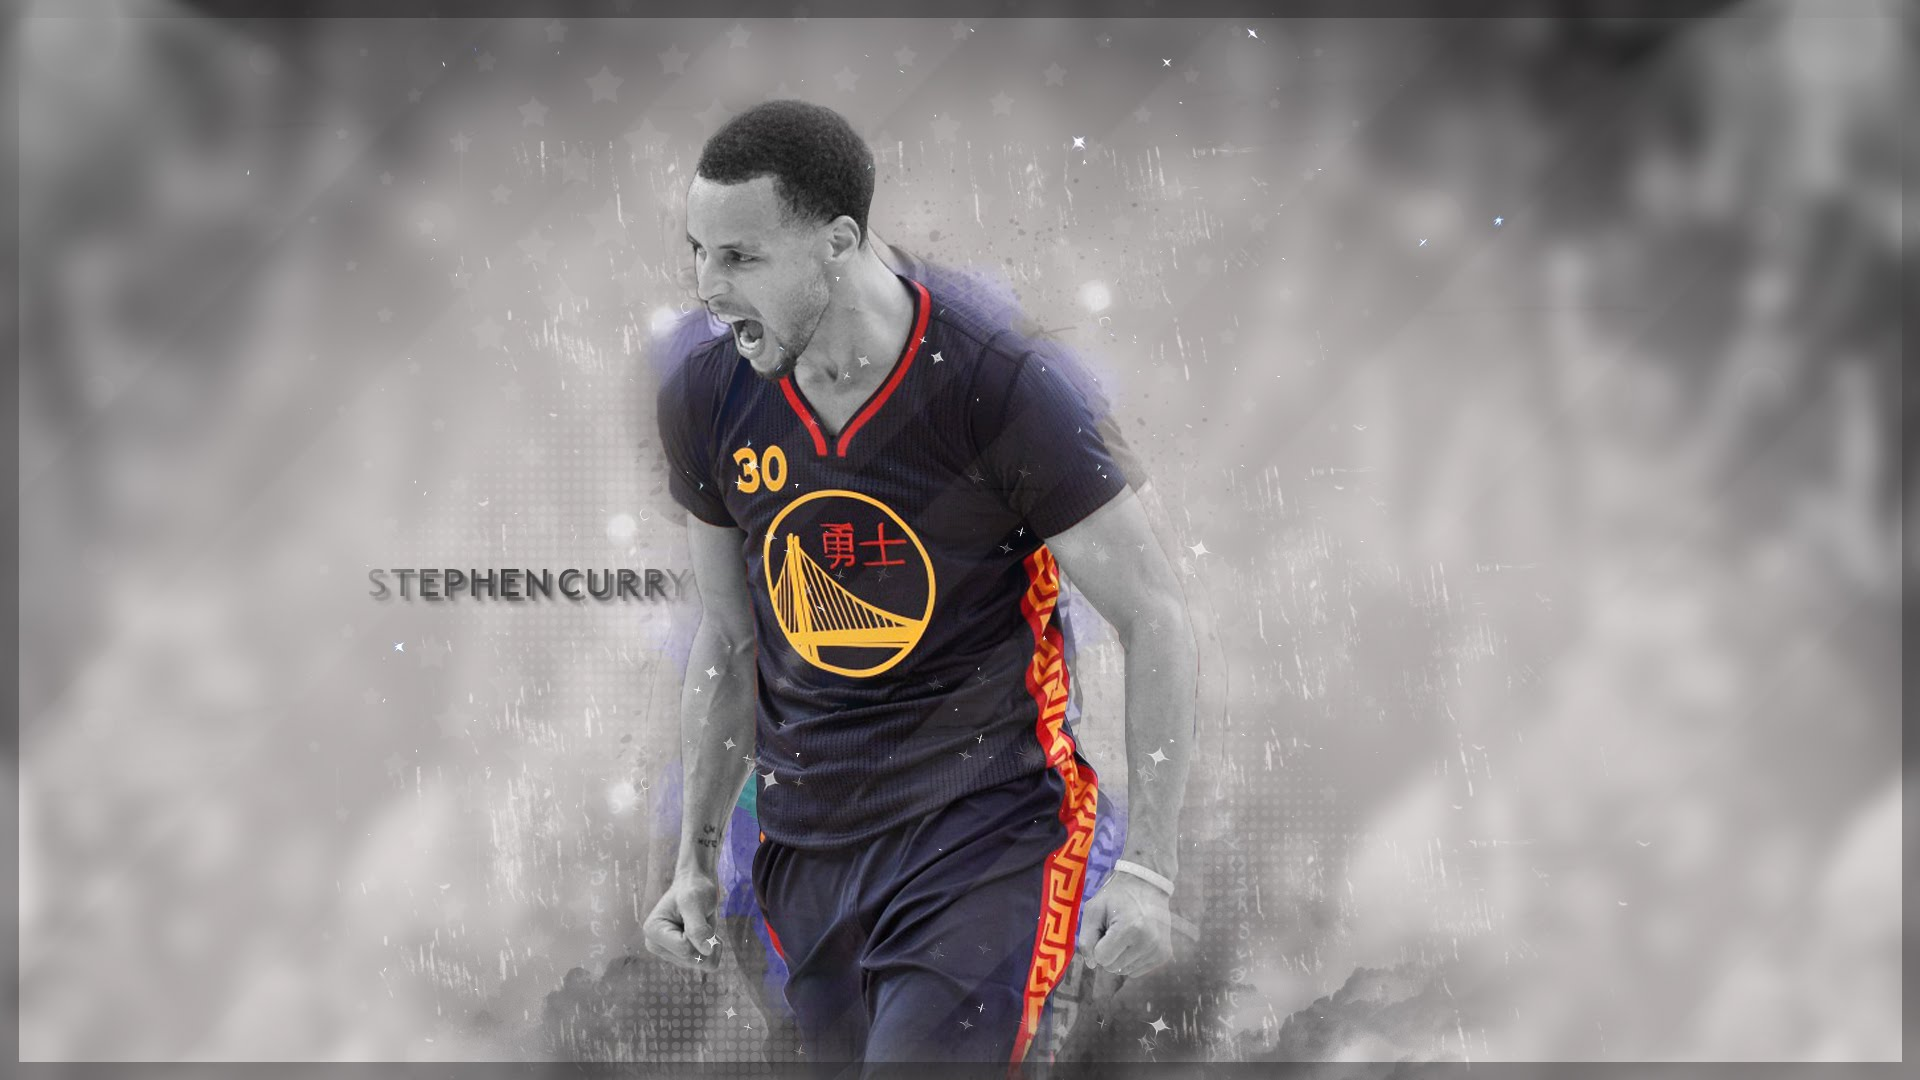 Stephen Curry Wallpaper Speedart 1920x1080